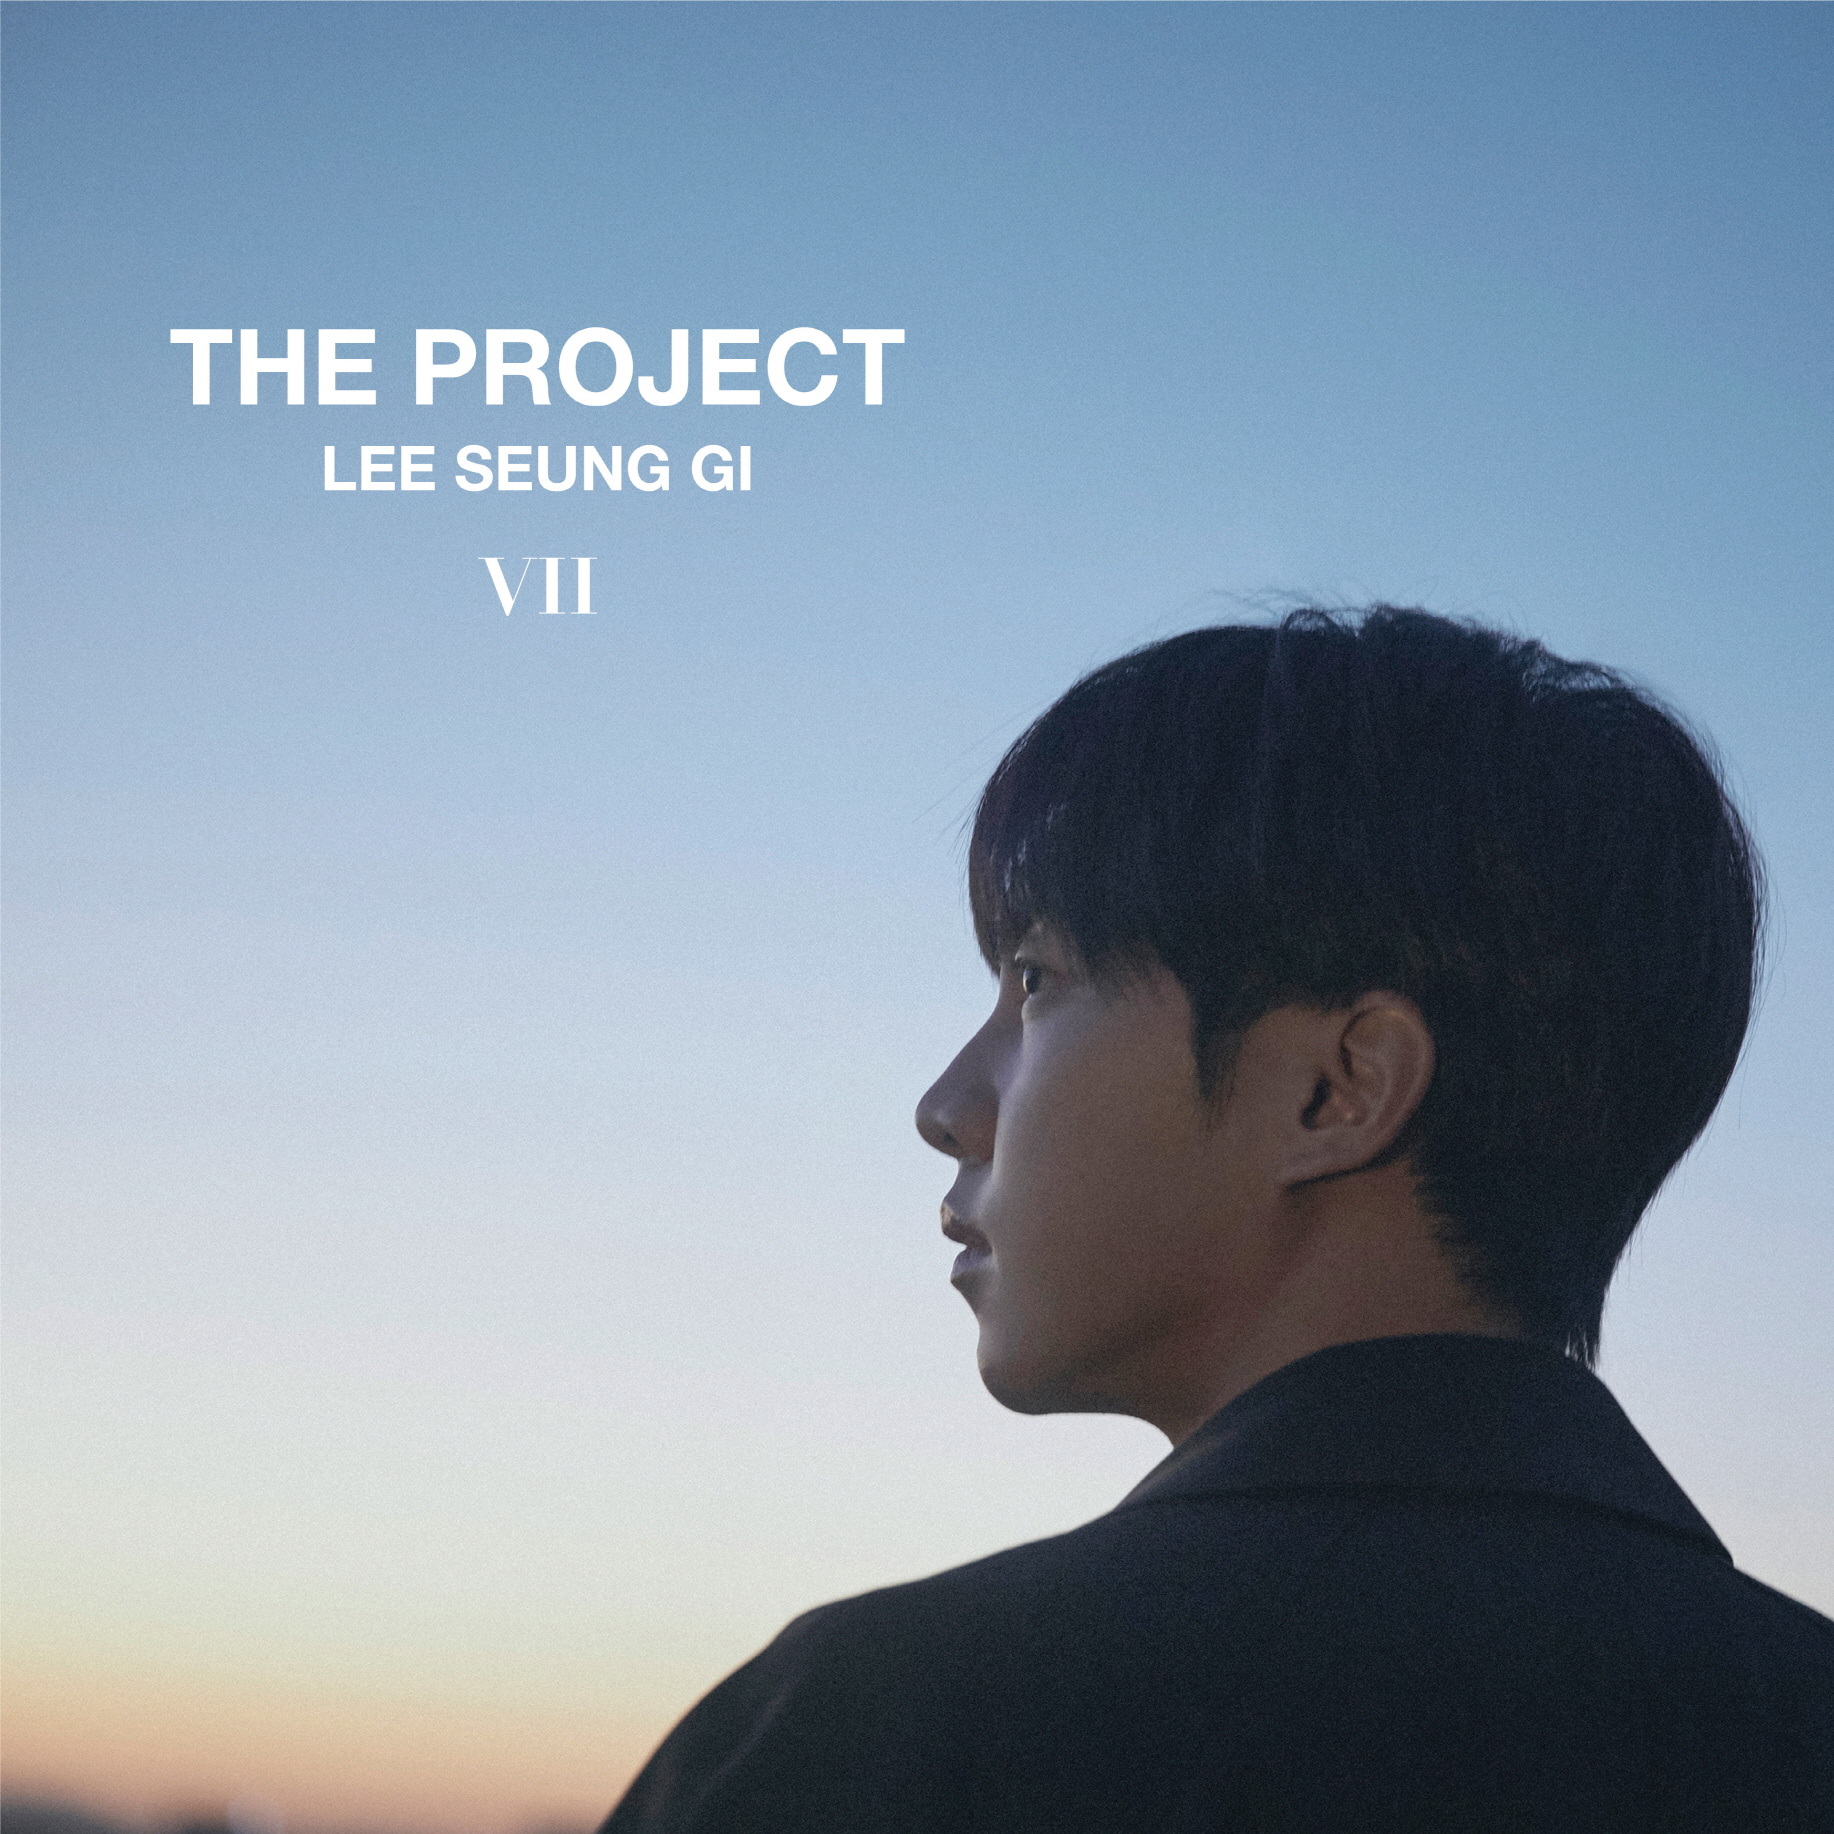 [PRE-ORDER] Lee Seung Gi - Album Vol.7 [The Project]케이팝스토어(kpop store)